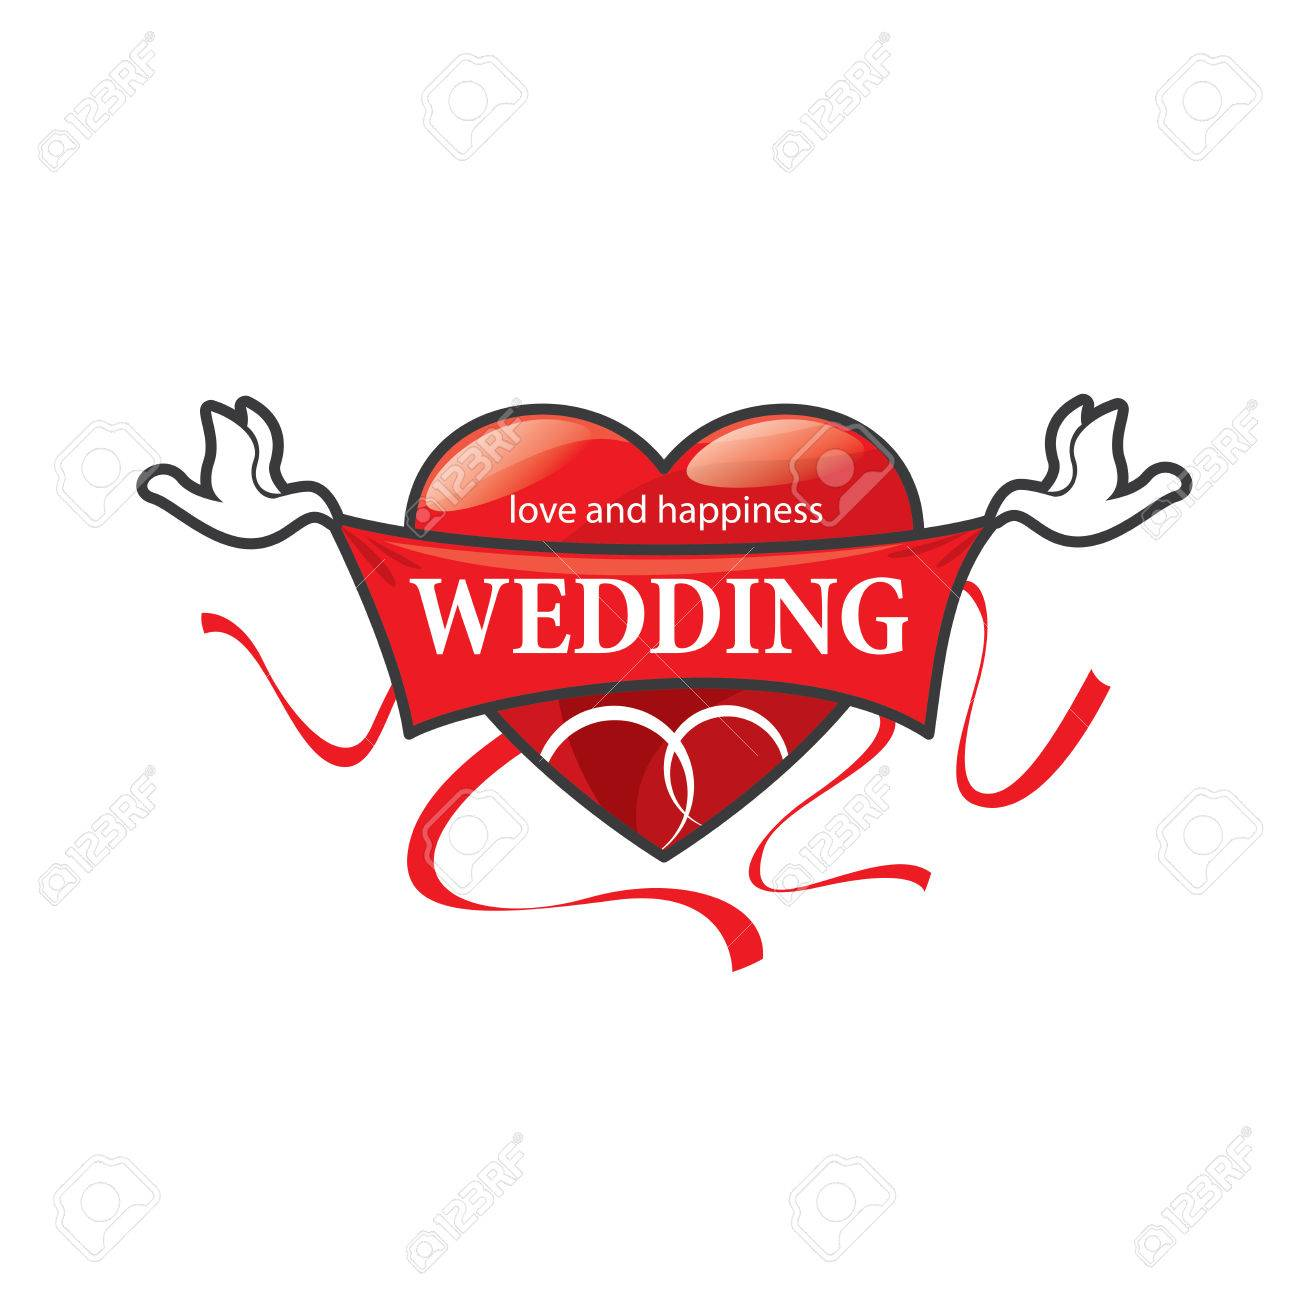 Wedding Vector Templates Free - Awesome Graphic Library •